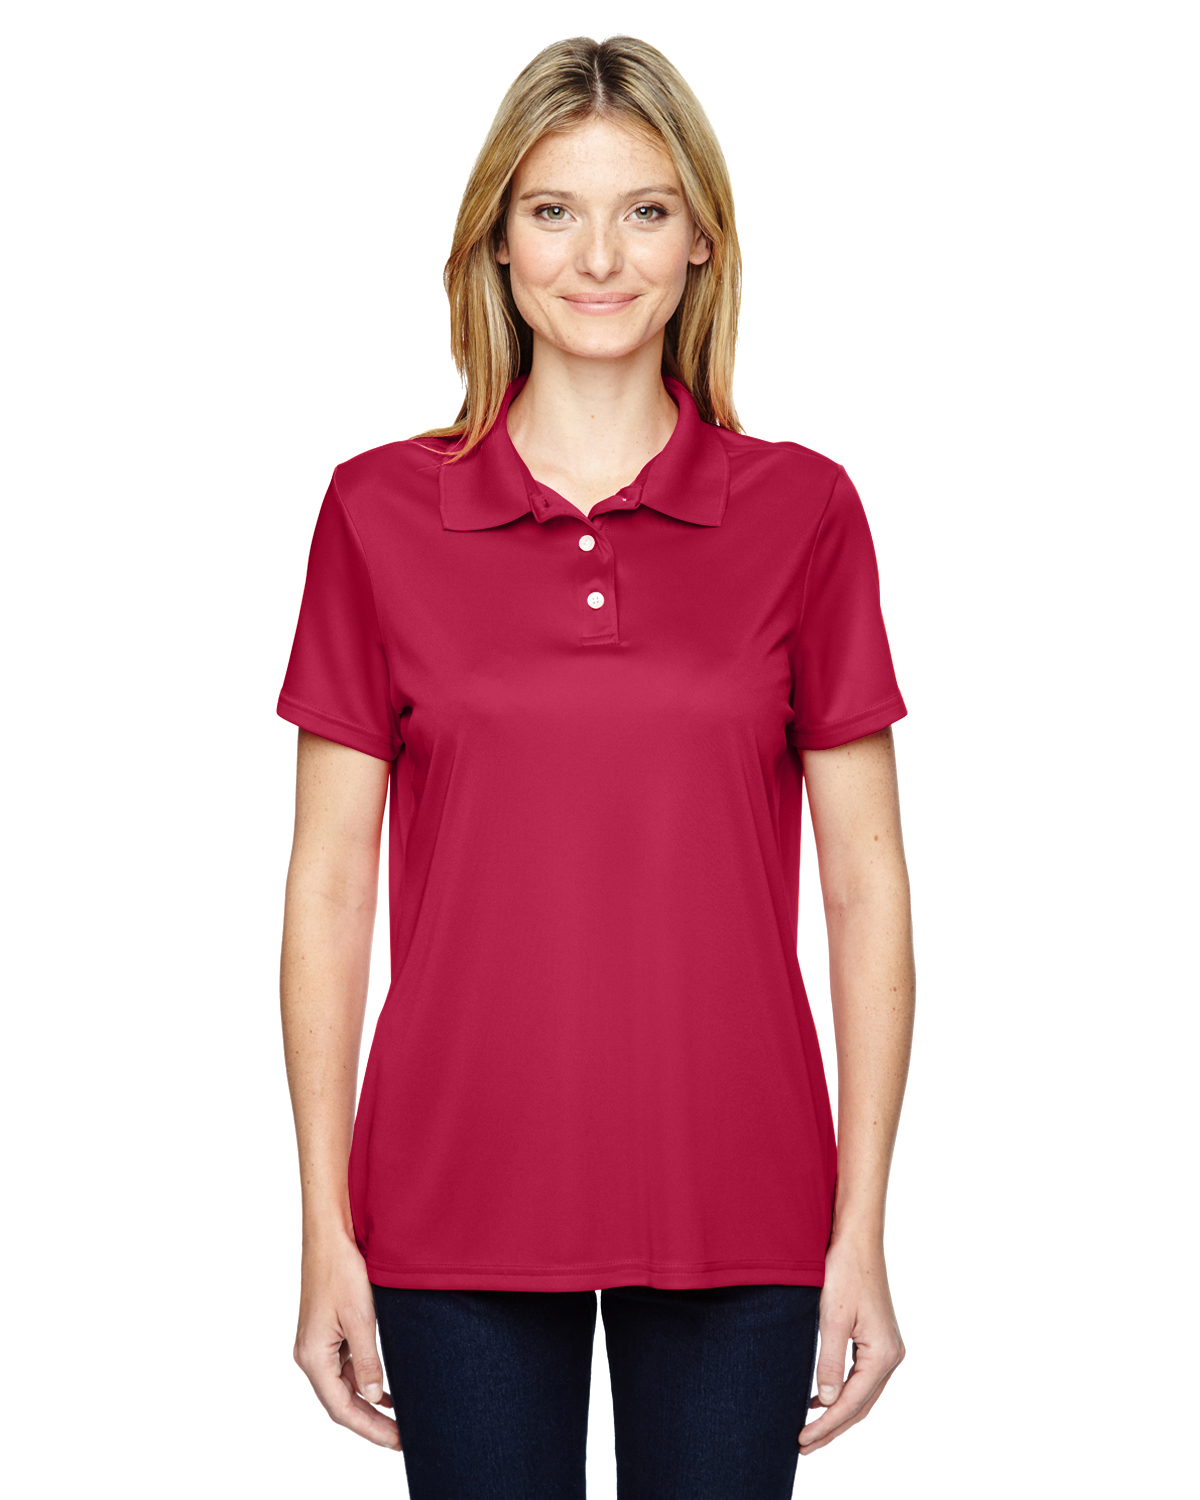 Hanes 480W - Ladies' 4 oz. Cool Dri Polo